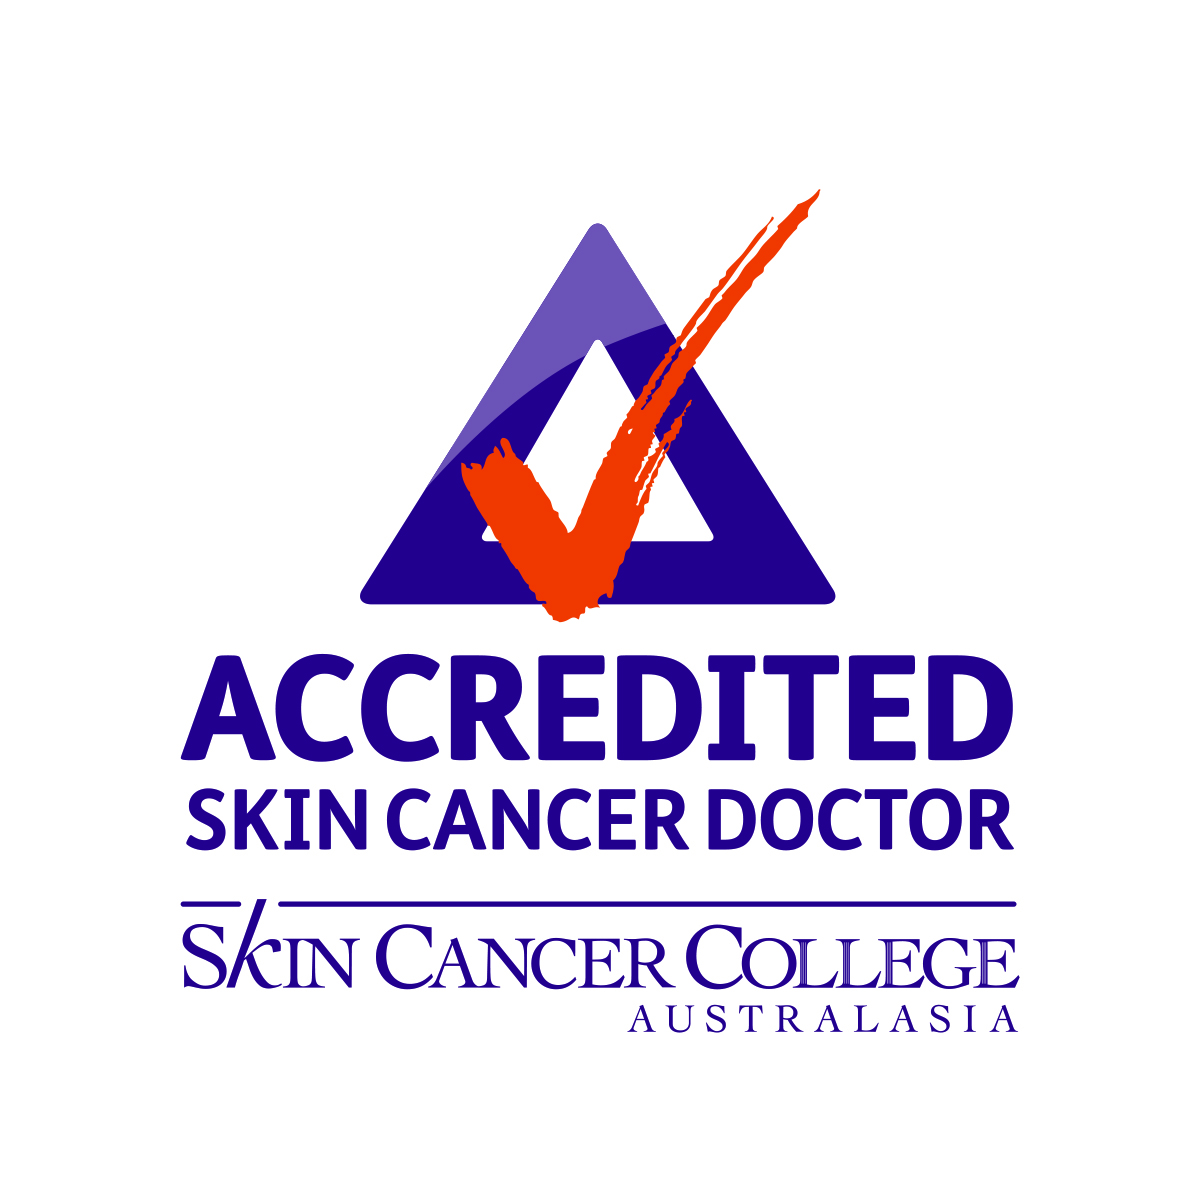 Accredited Doctor Skin Cancer College